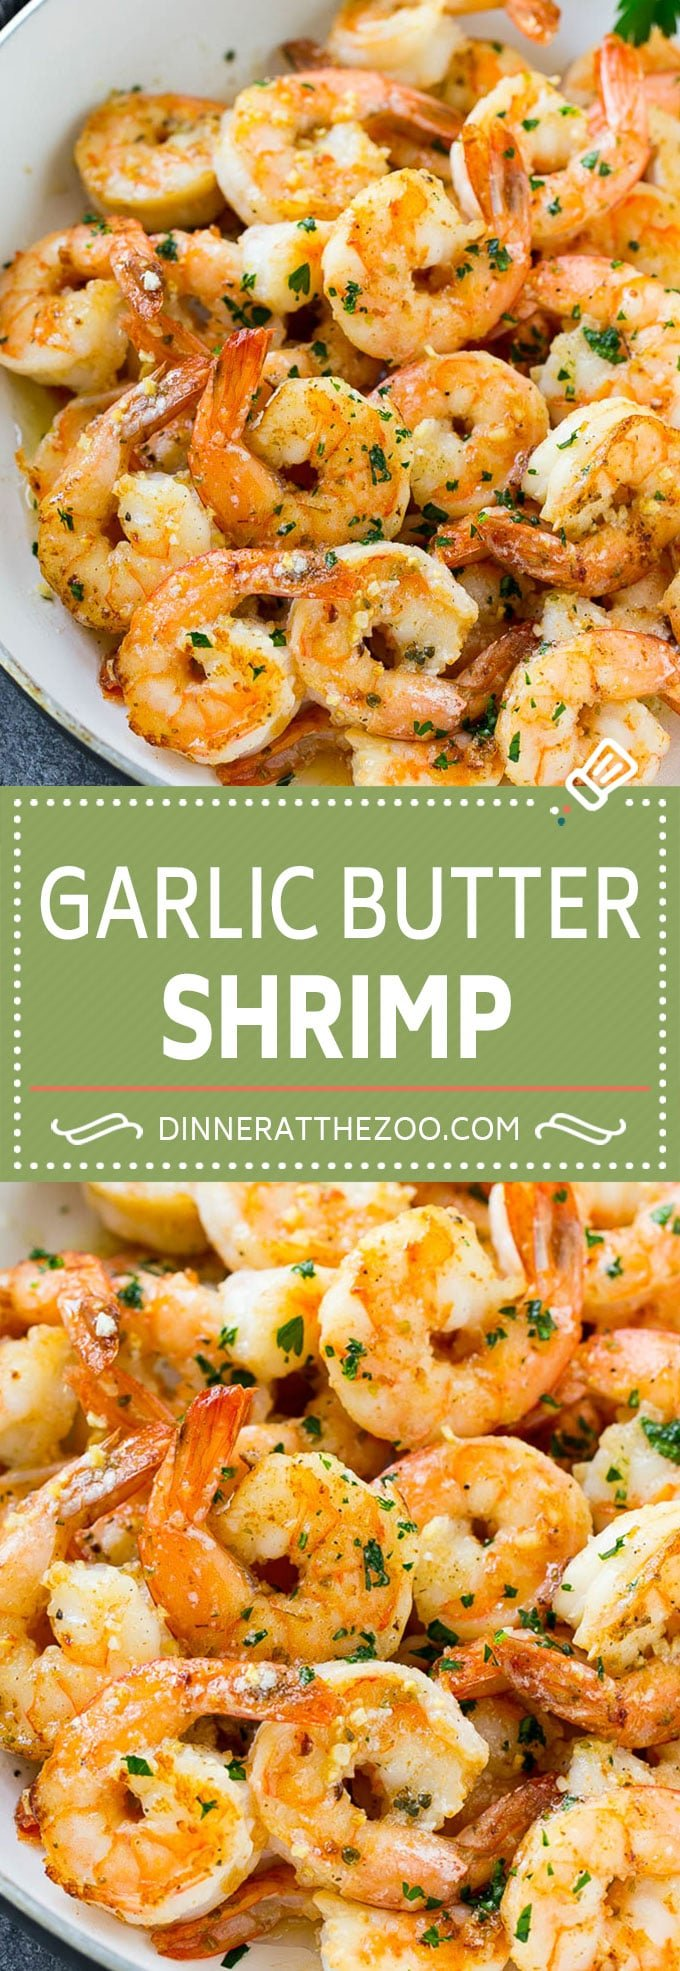 Garlic Butter Shrimp | Easy Shrimp Recipe | Sauteed Shrimp #shrimp #seafood #keto #lowcarb #dinner #dinneratthezoo